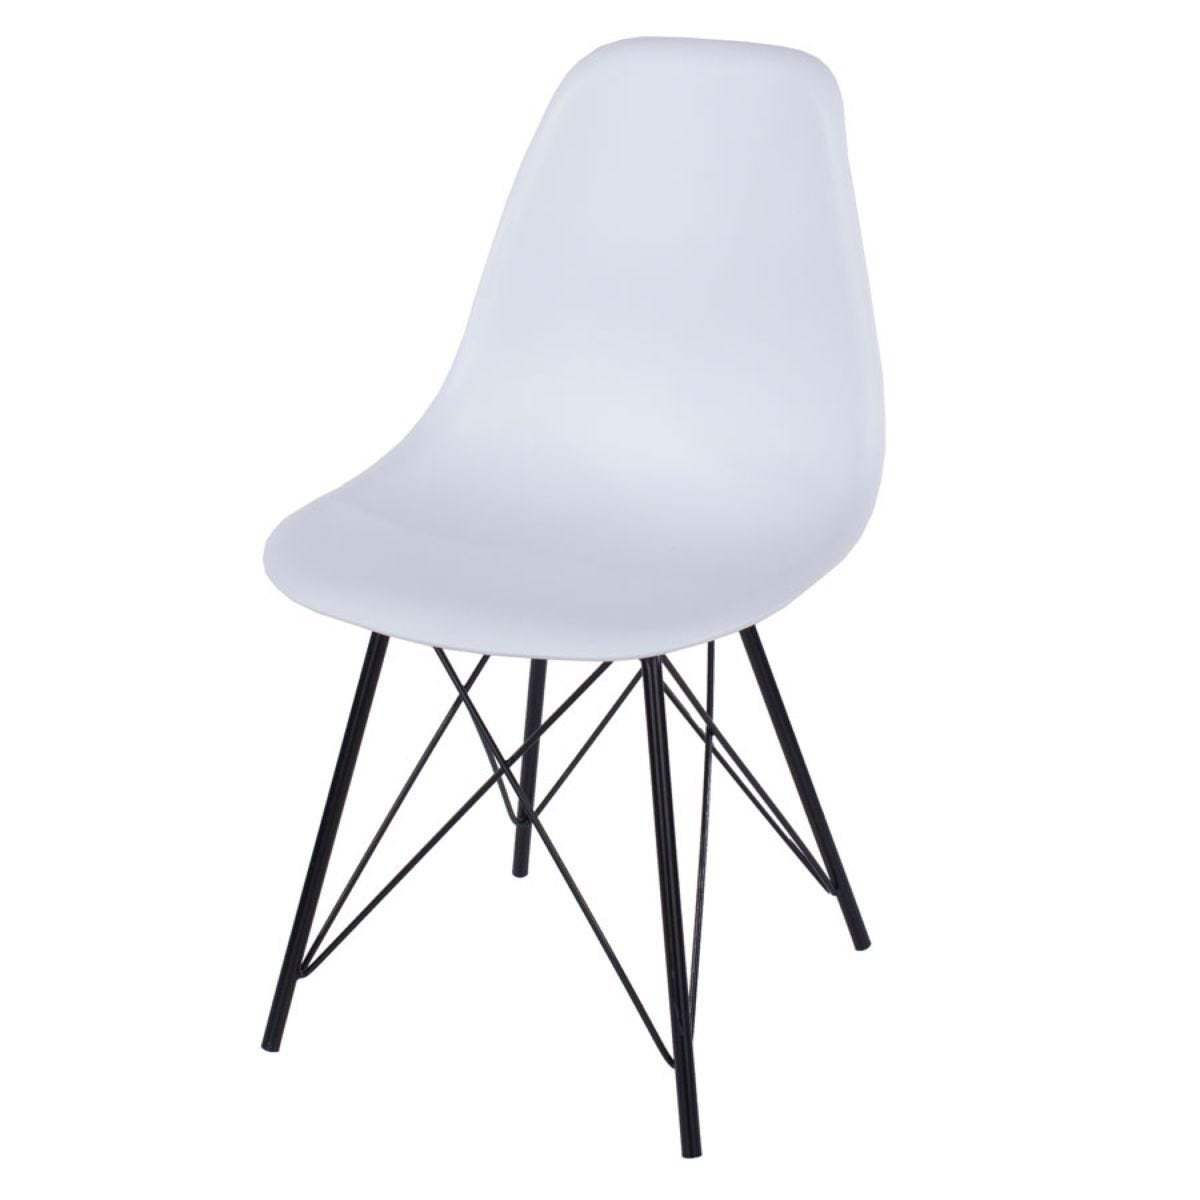 Roloku Pair of Plastic Chairs with Metal Legs - White